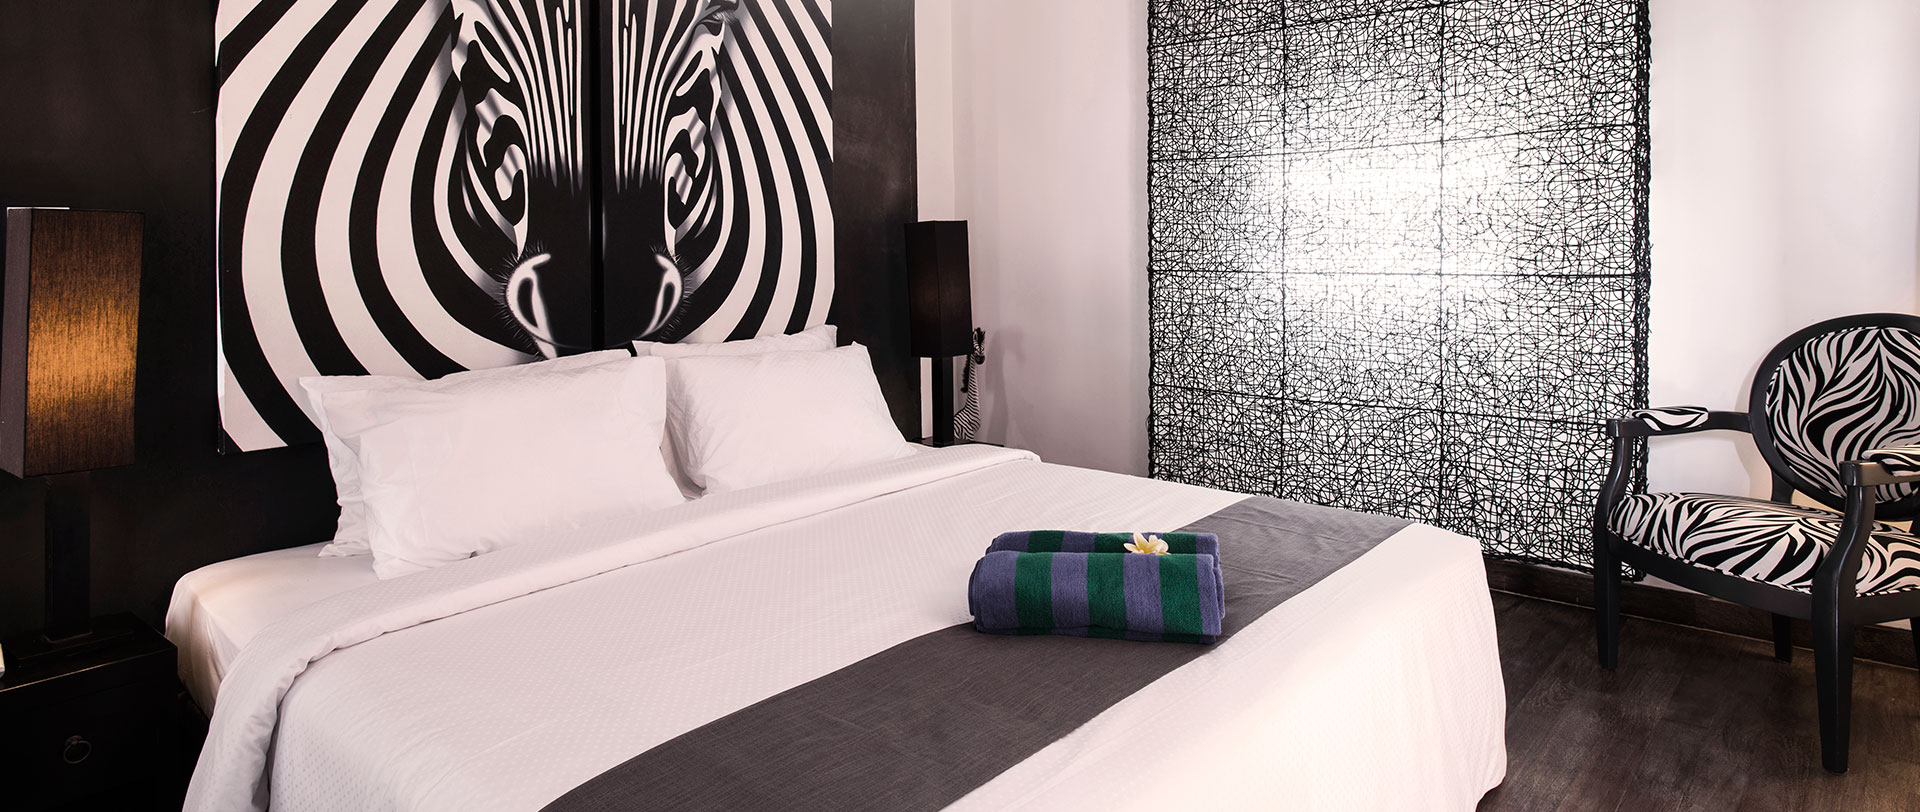 Villas in Bukit Jimbaran - Room Zebra1_20160207042840